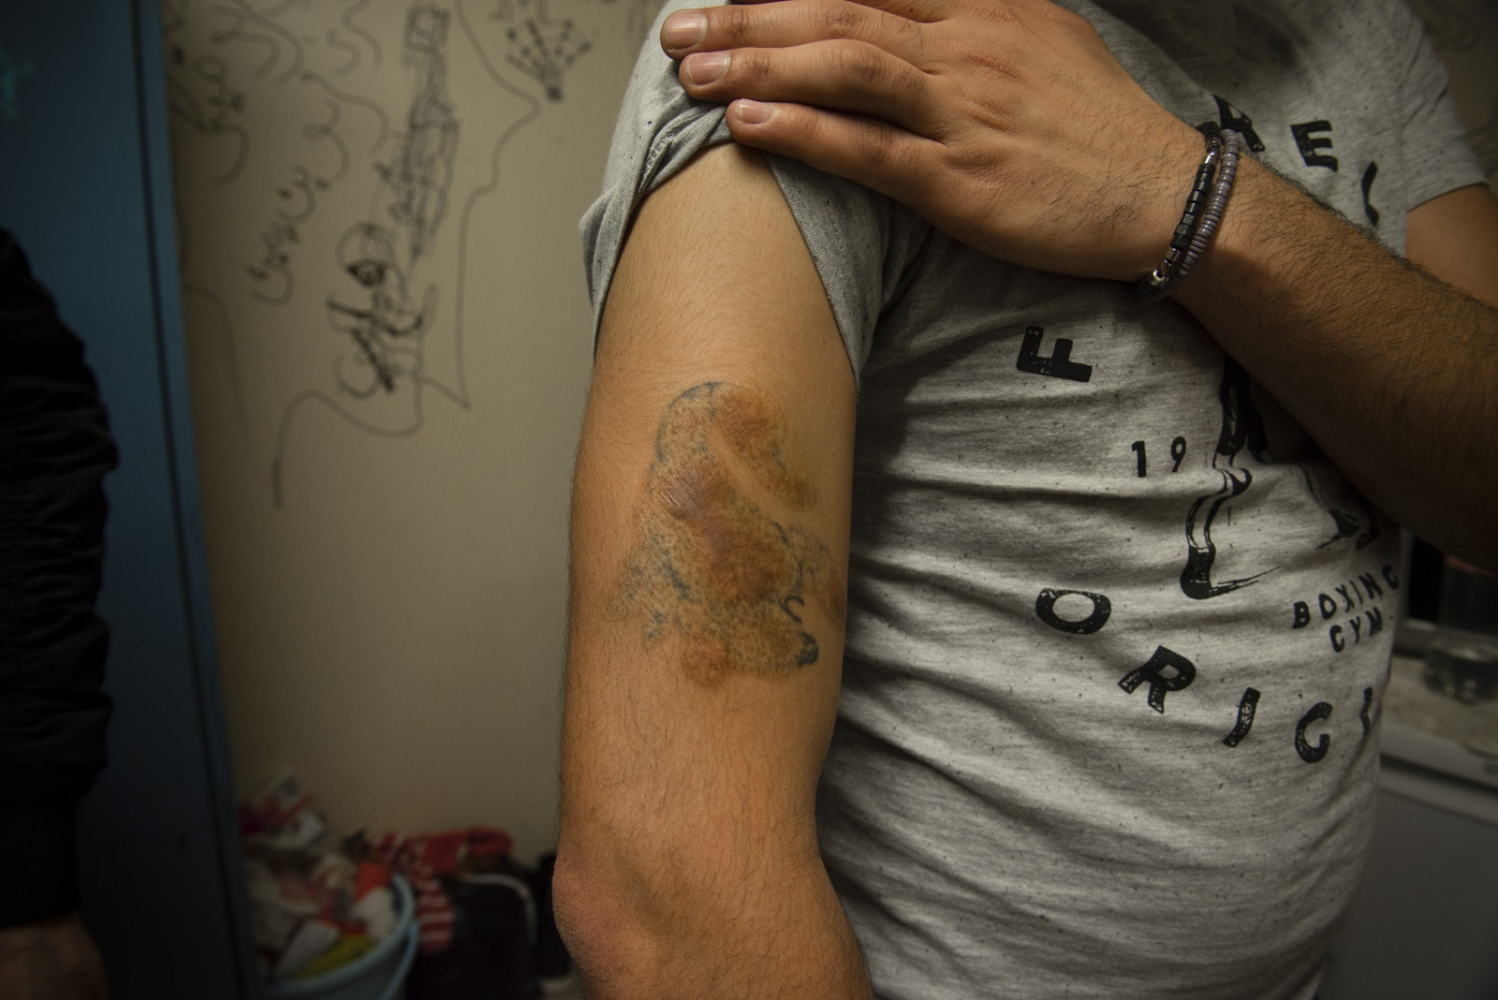 BERLIN | GERMANY | 2017-02-26 | A syrian refugee shows his tattoo. The burns on his arm bear witness to tortures he tolerated while he was illegally kept in Assad's notorious prisons.